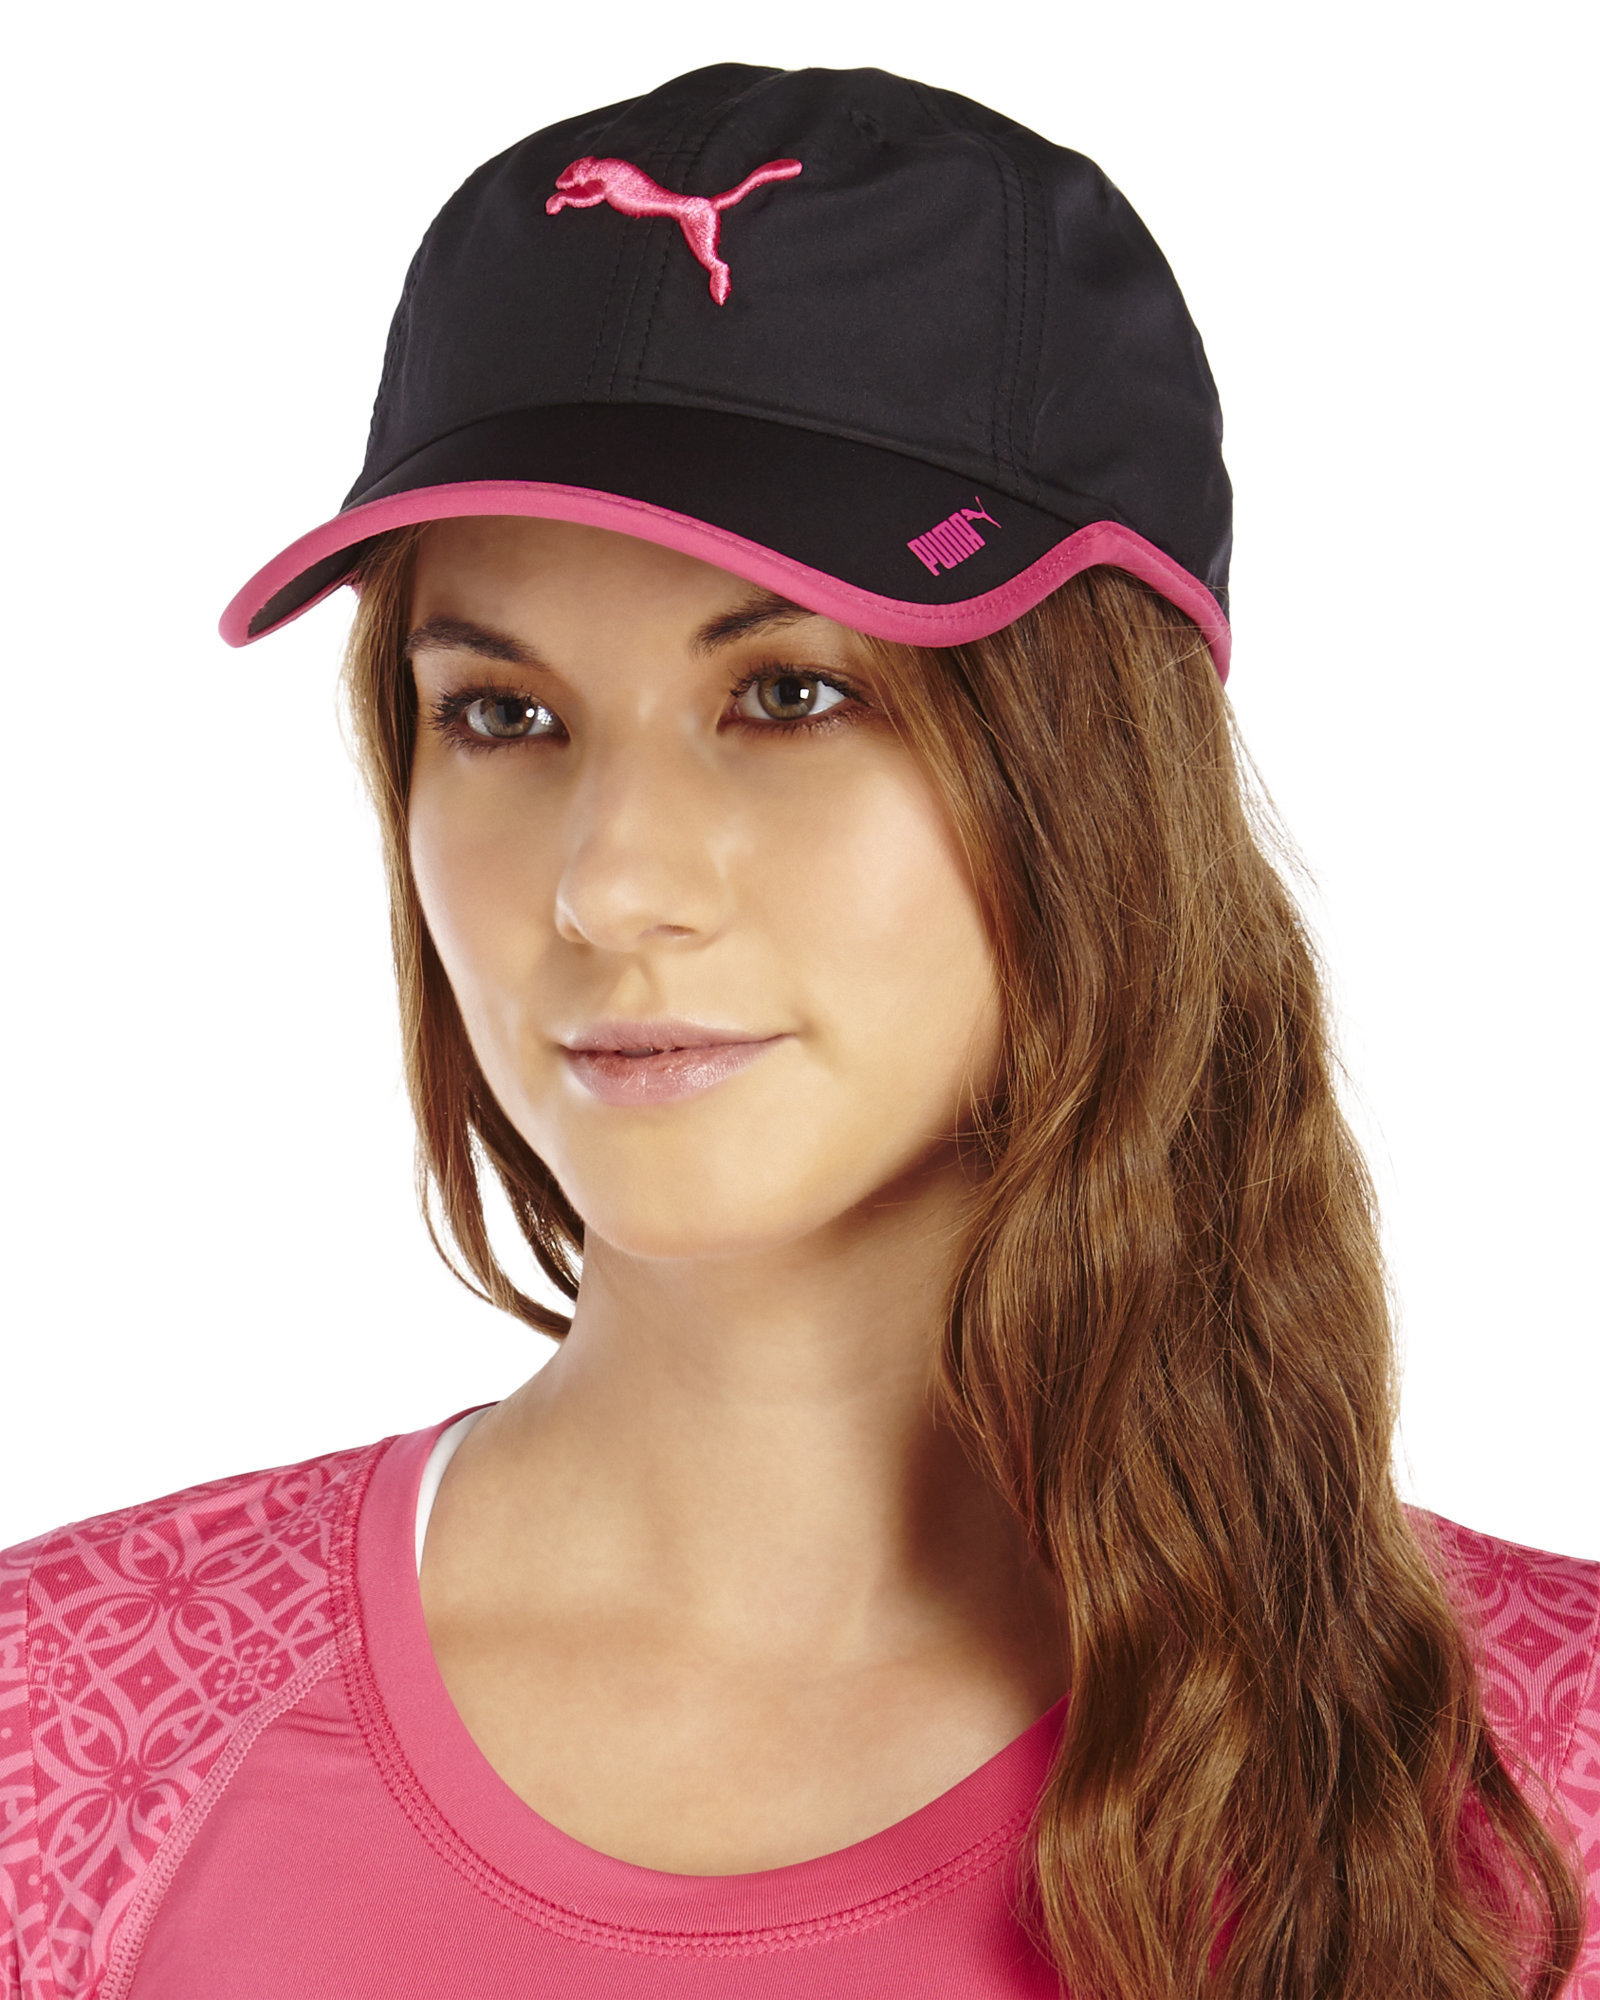 Lyst - PUMA Black   Fuchsia Greta Running Cap in Black cd2bf102469